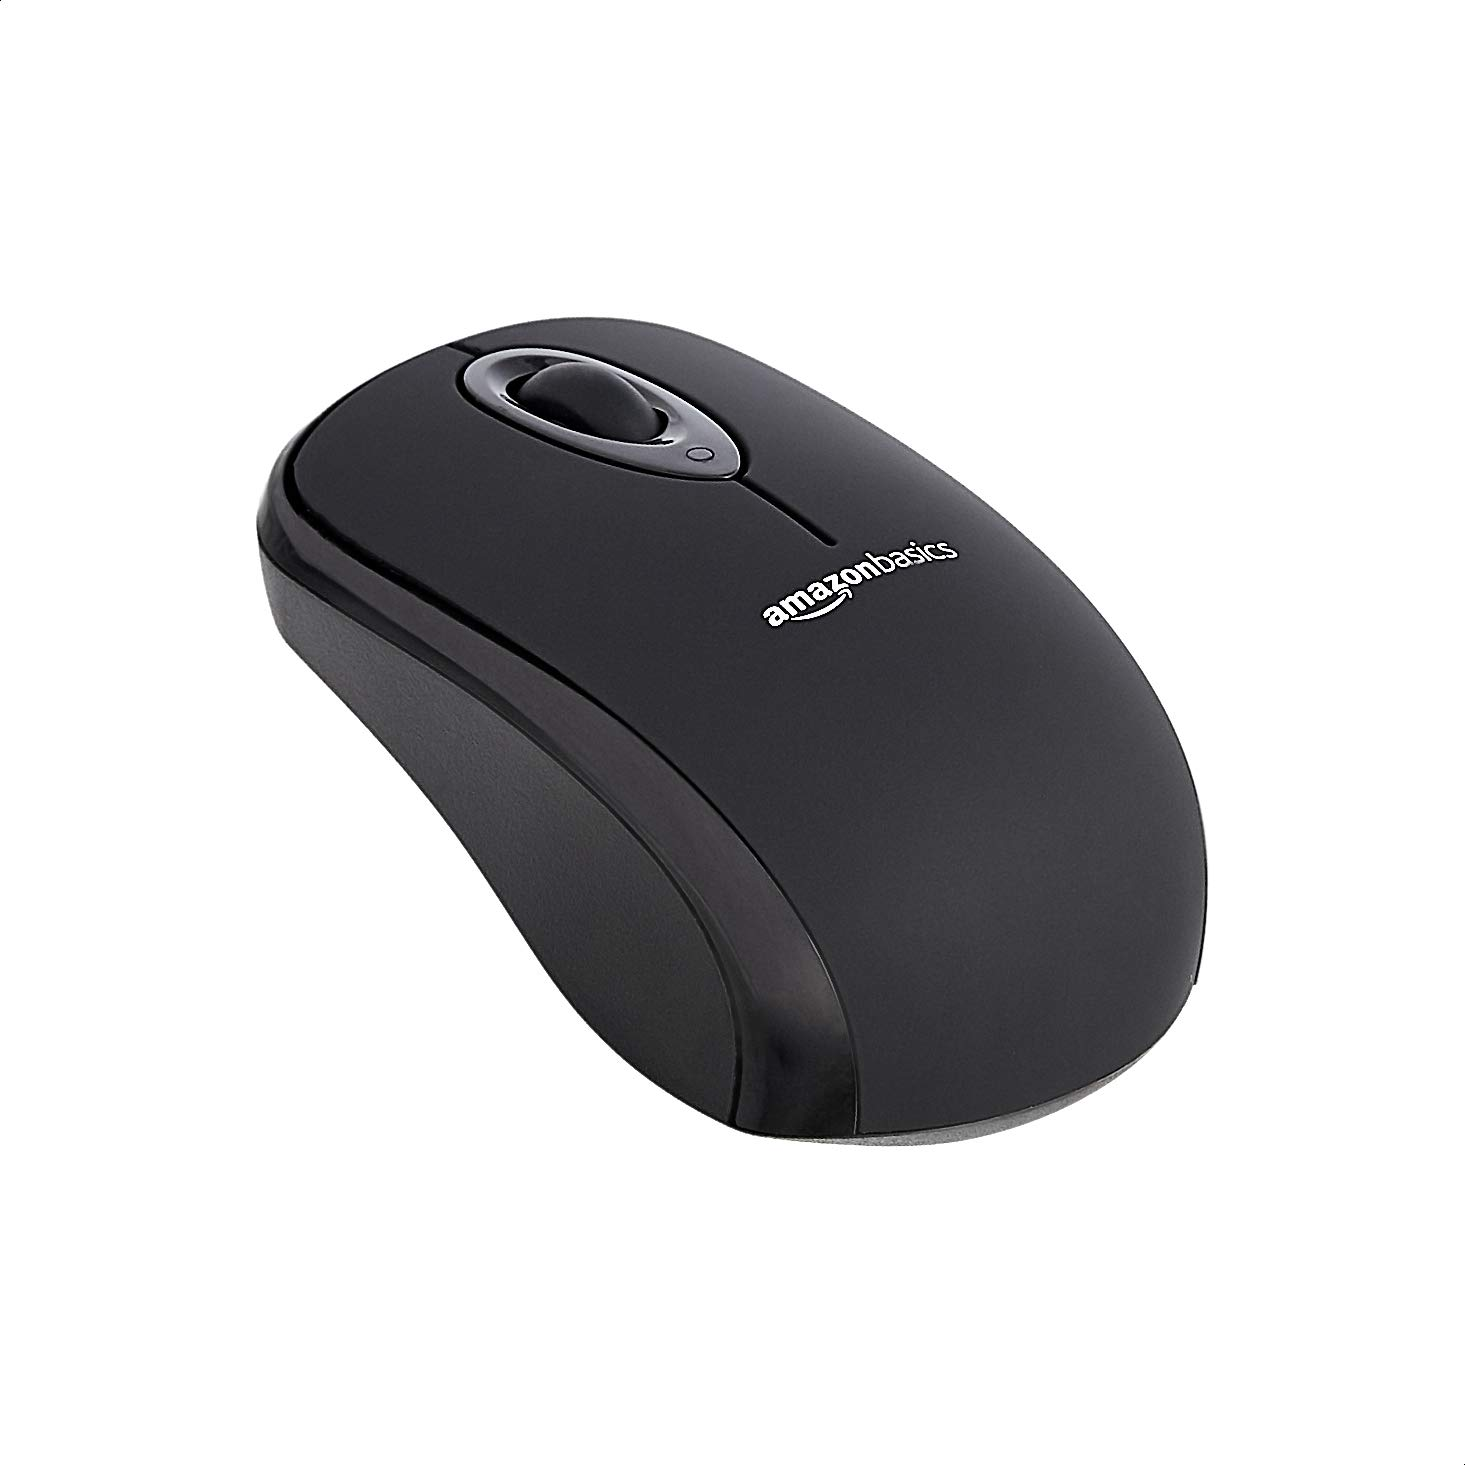 AmazonBasics Wireless Computer Mouse with USB Nano Receiver - Black